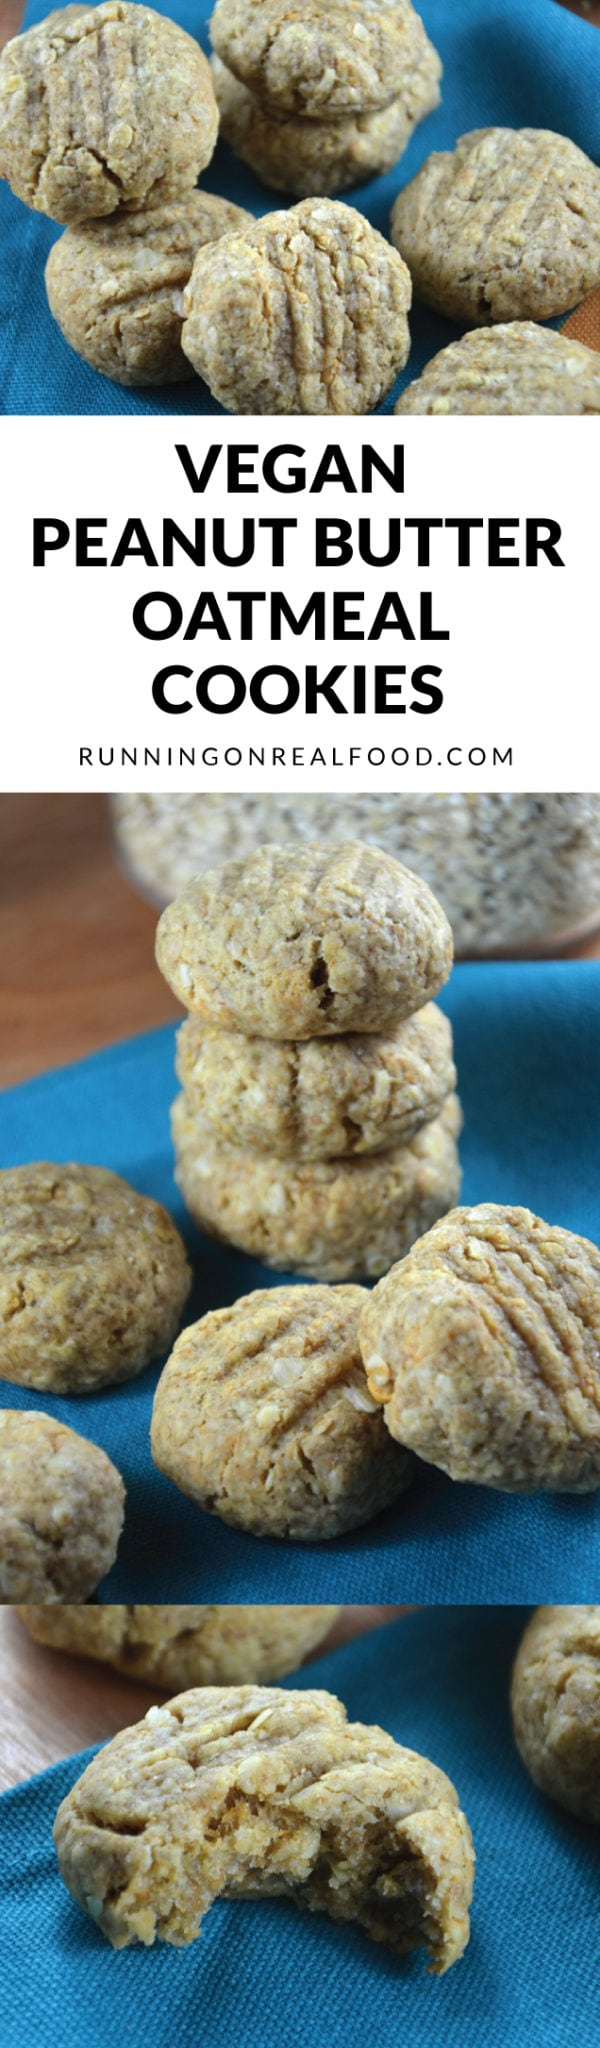 These vegan peanut butter oatmeal cookies are delicious, easy to make and completely egg and dairy-free. Make in one bowl, bake in 8 minutes and you'll have a yummy, sweet treat ready to satisfy your sweet tooth.